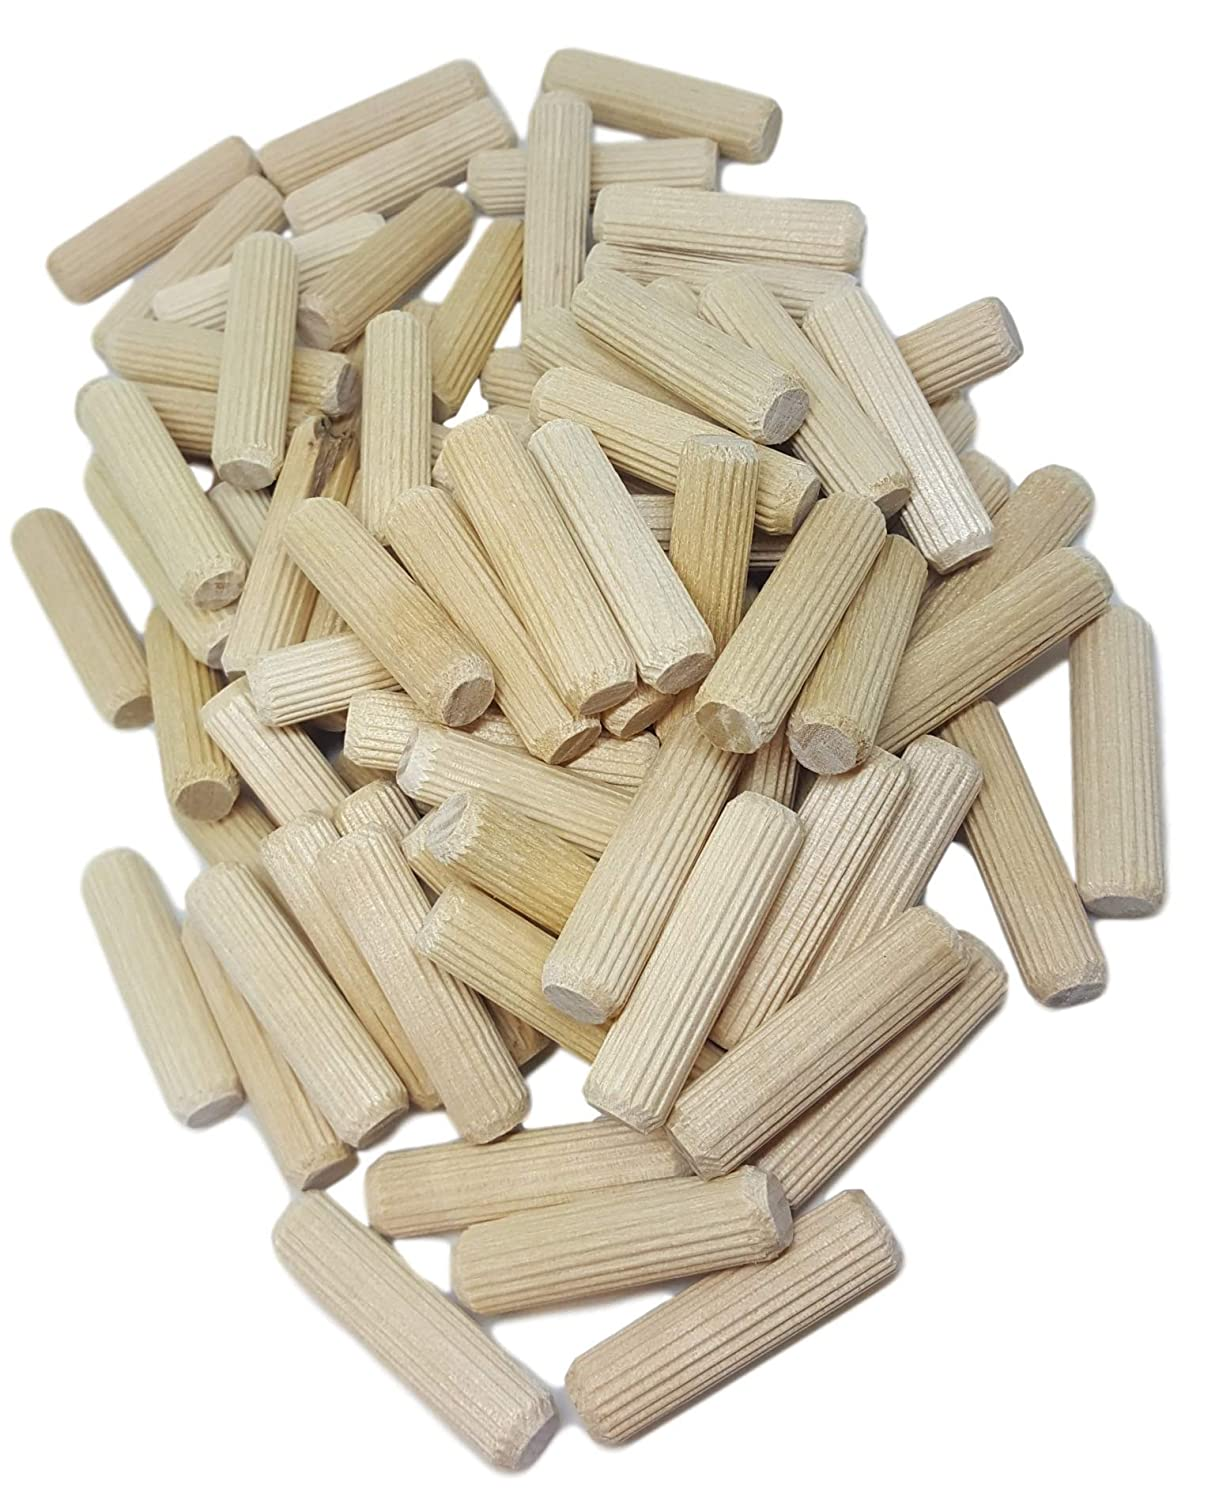 100 Pack 3 8 x 2 Wooden Dowel Pins Wood Kiln Dried Fluted and Beveled made of Hardwood in U.S.A.